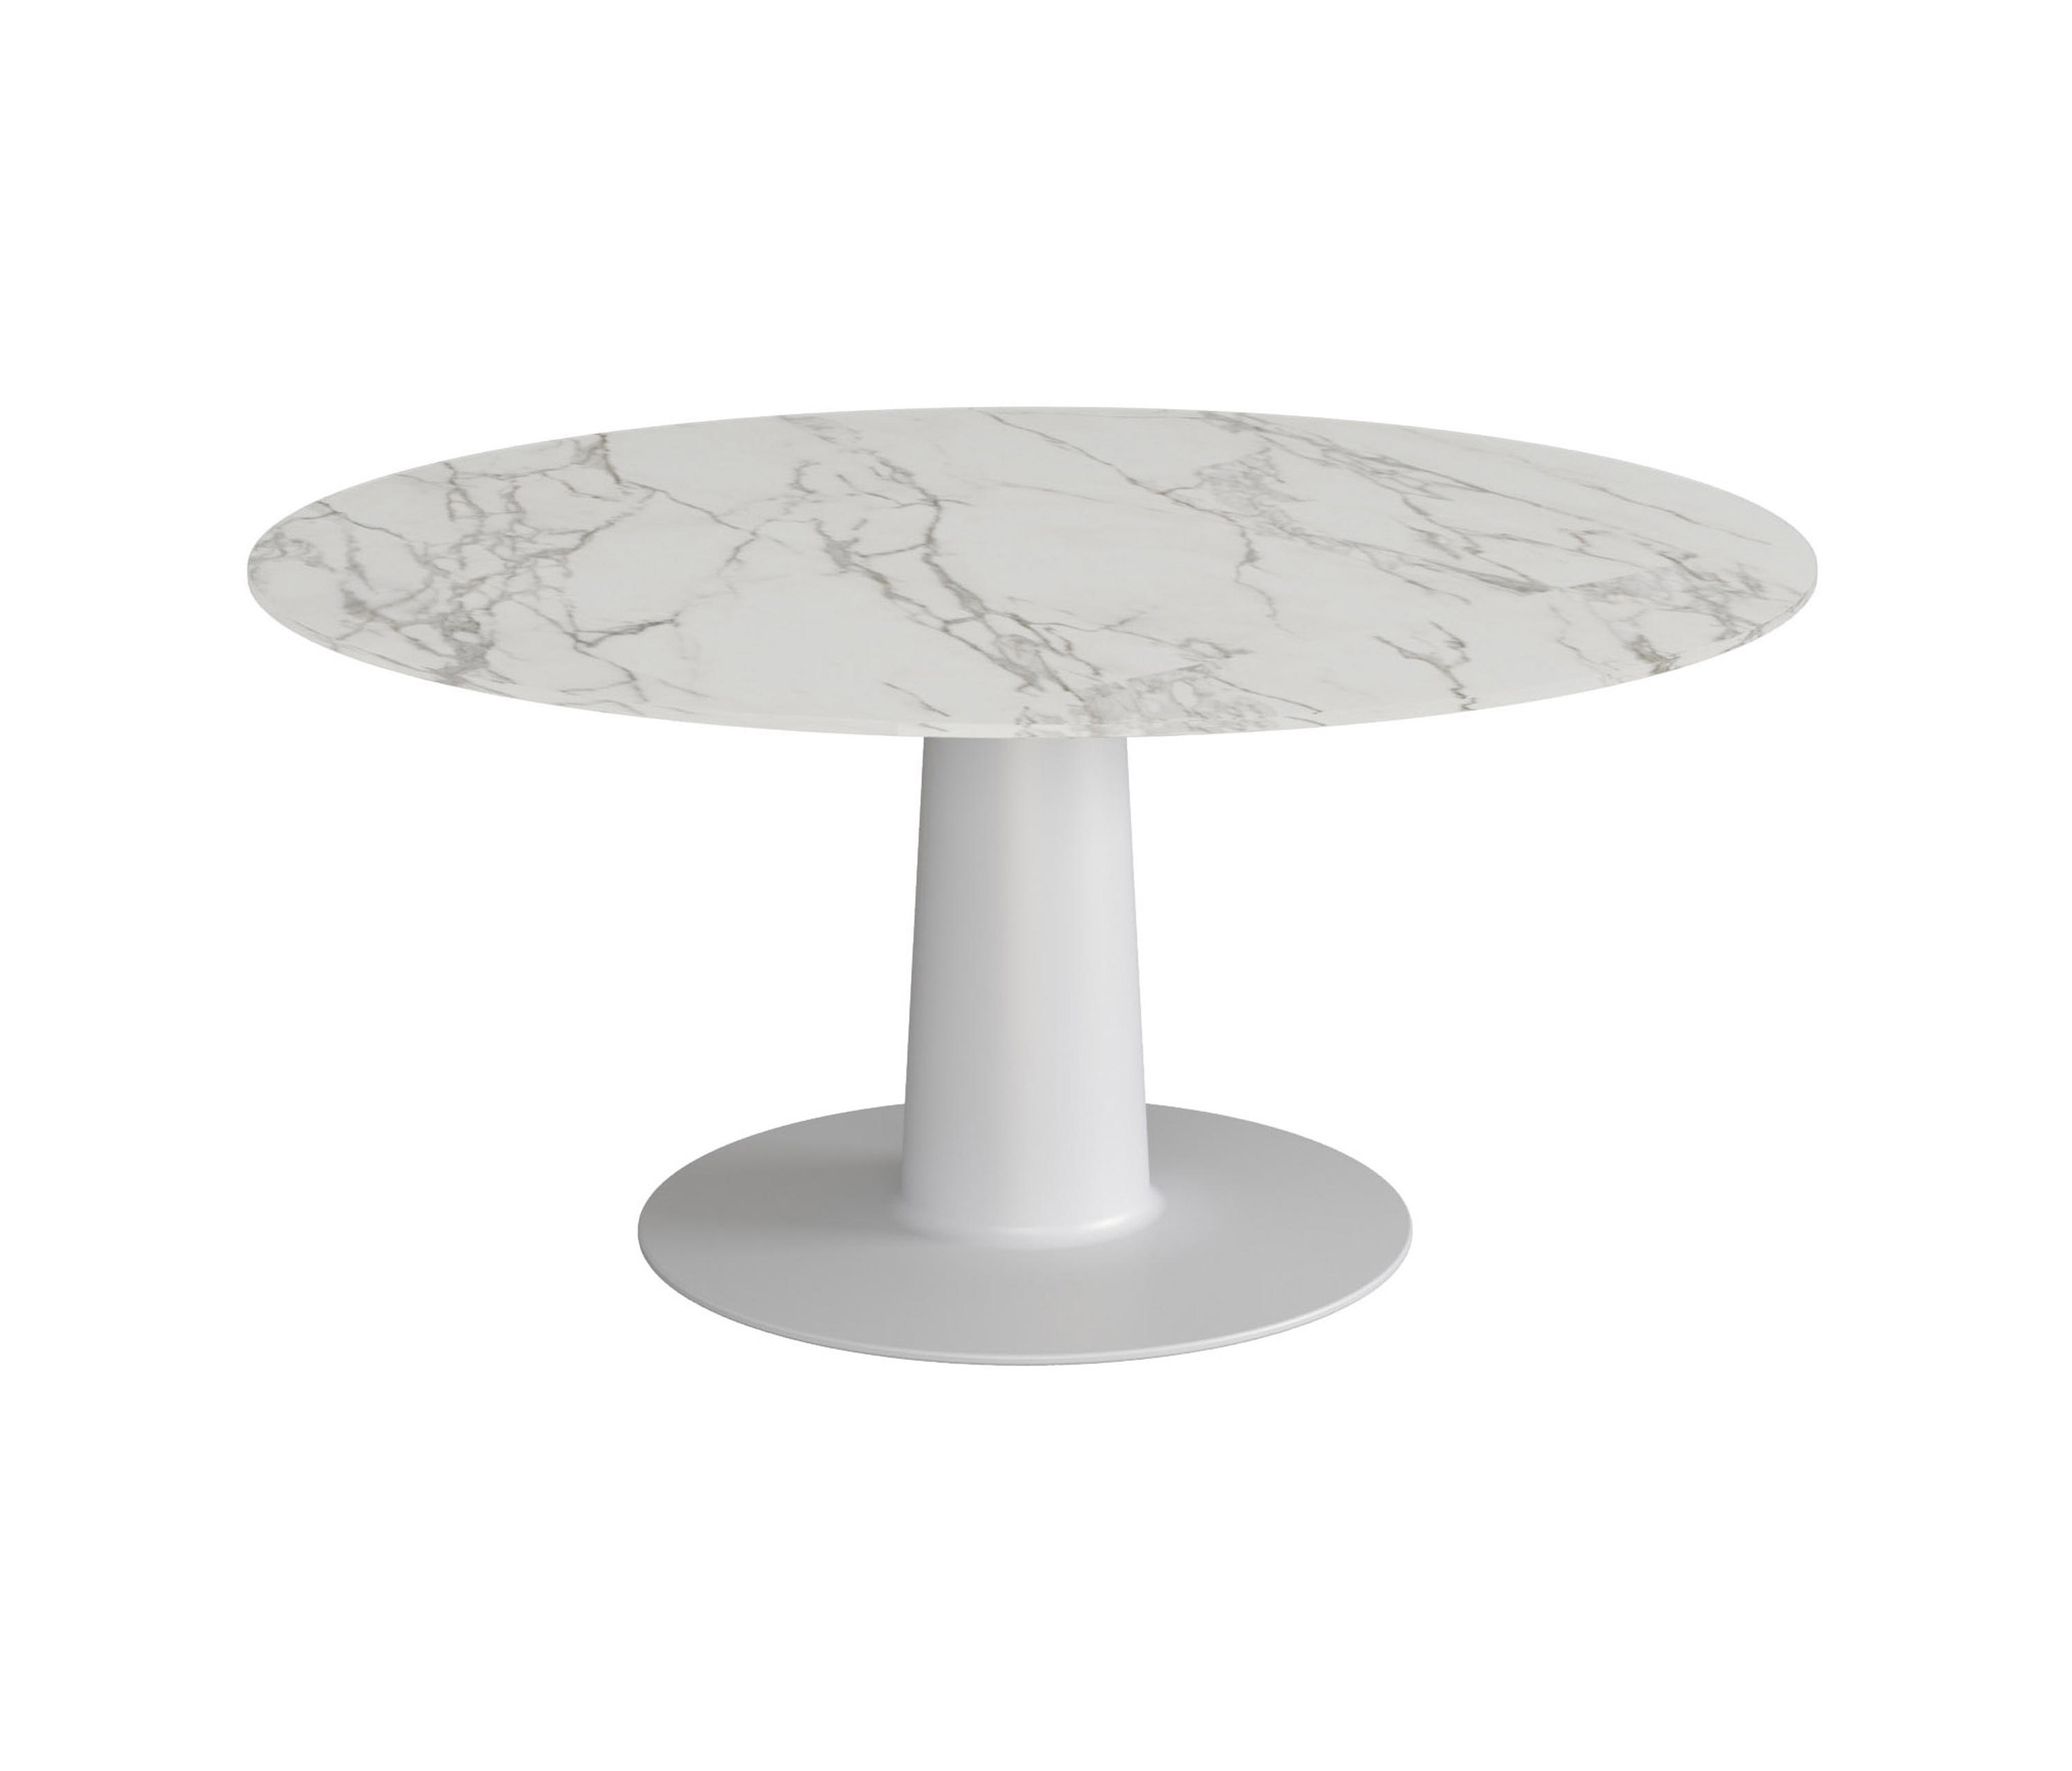 Admirable Moon Vetro Dining Tables From Jesse Architonic Download Free Architecture Designs Grimeyleaguecom